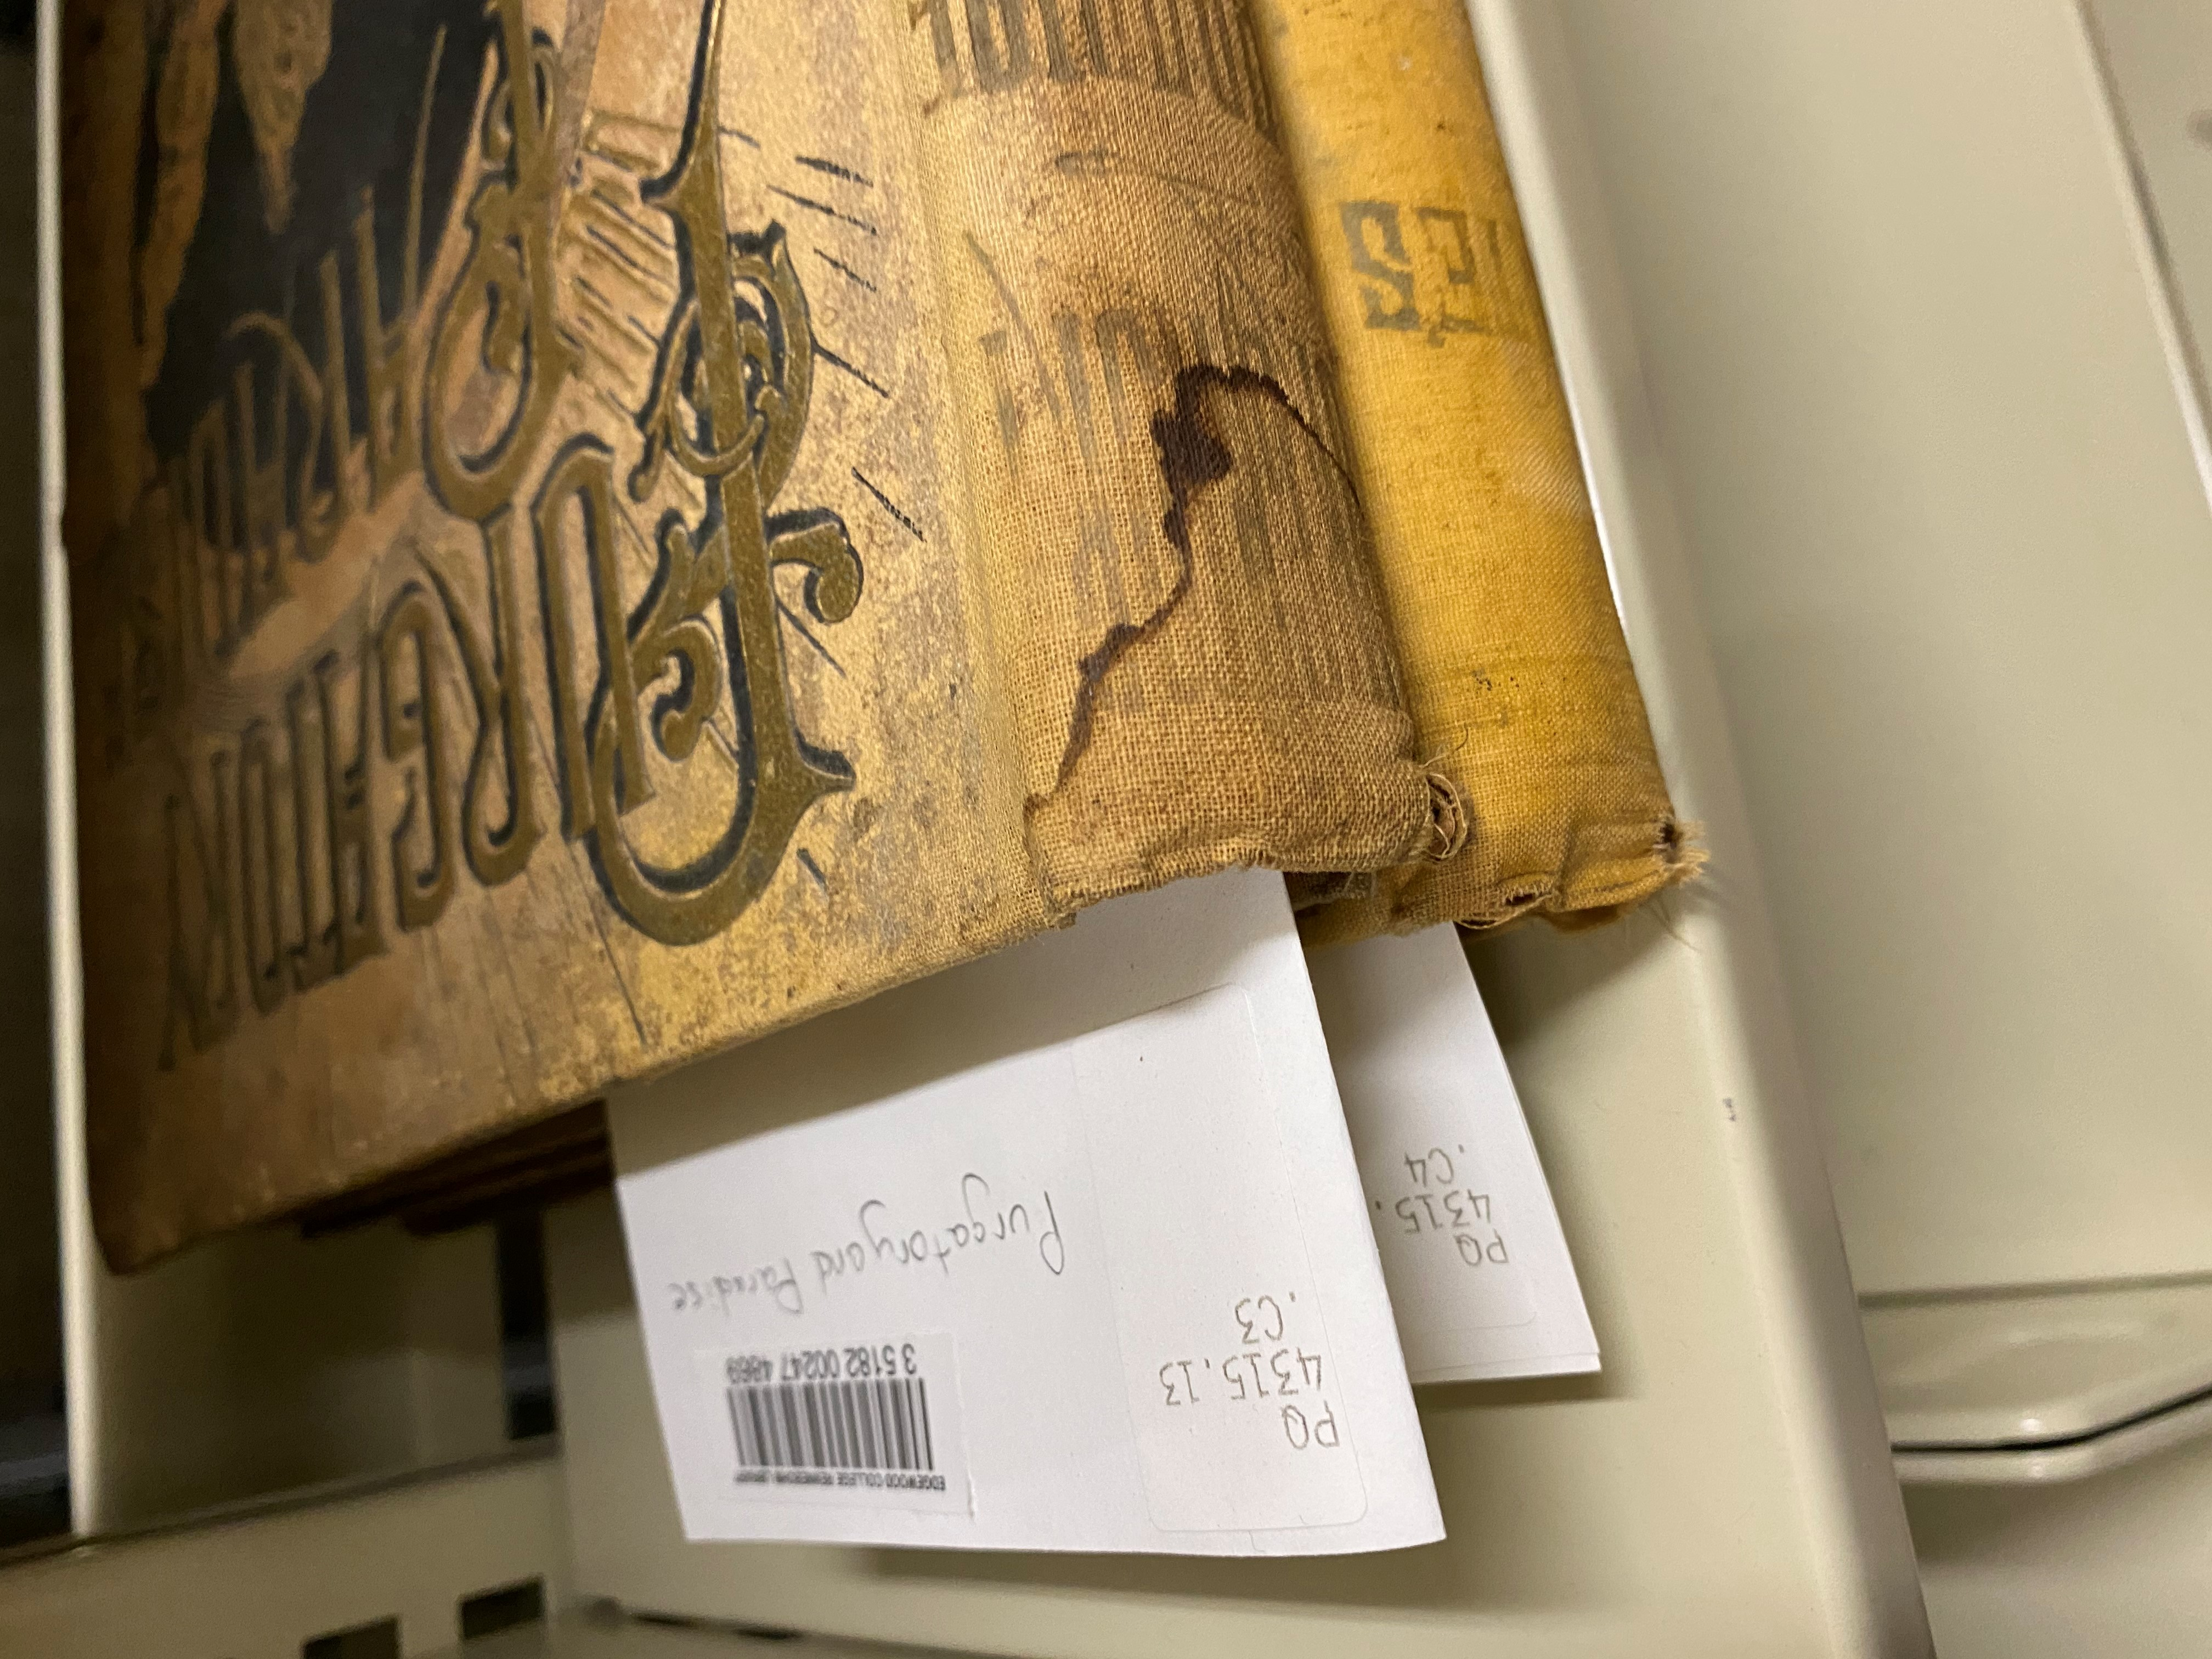 Barcodes and call numbers for rare books stored in the archives